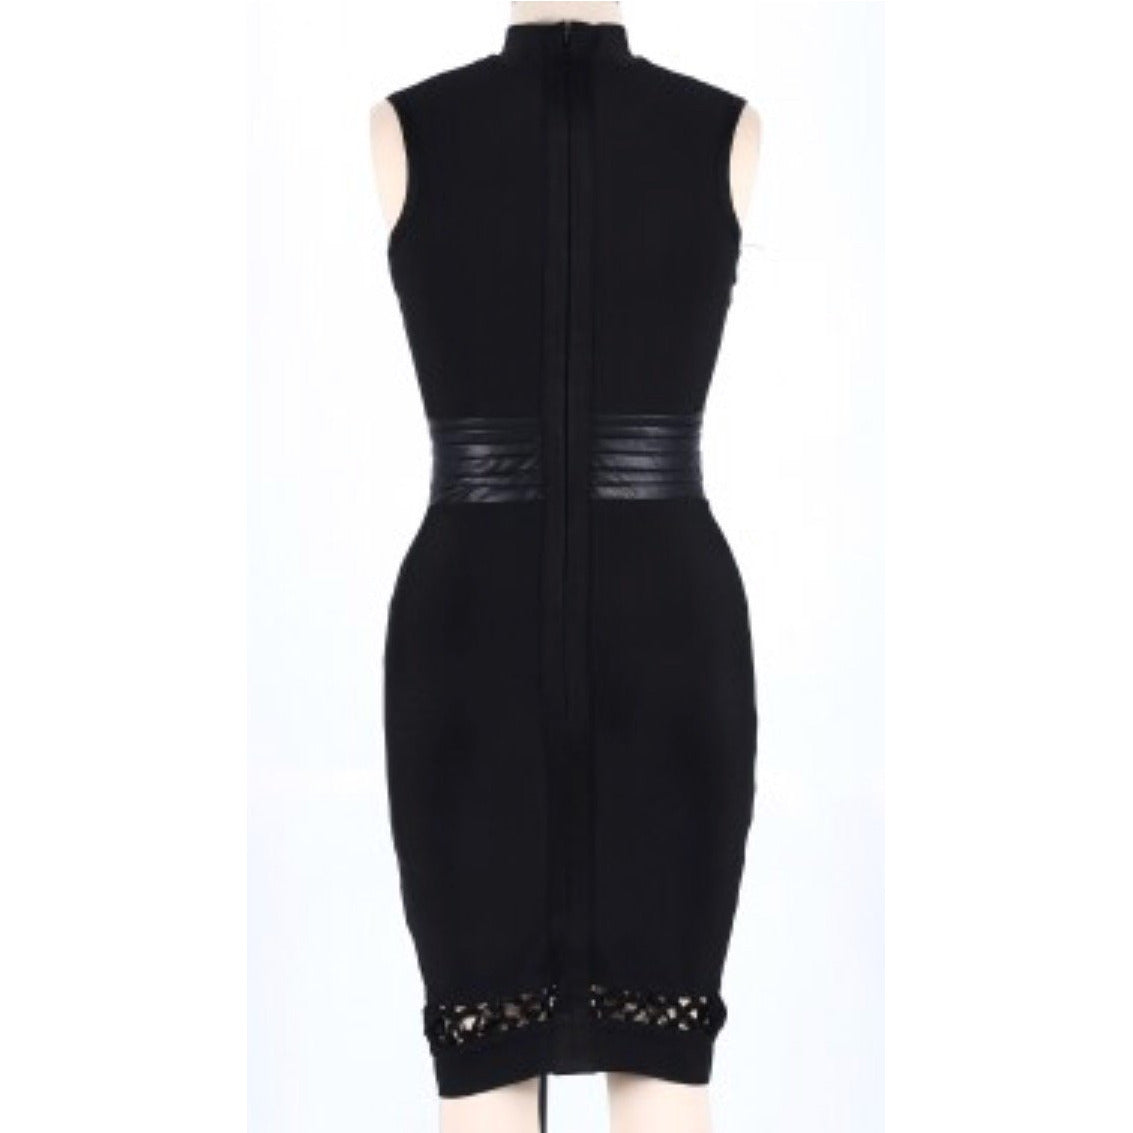 Black High Neck Sleeveless Cut Out Bandage Dress